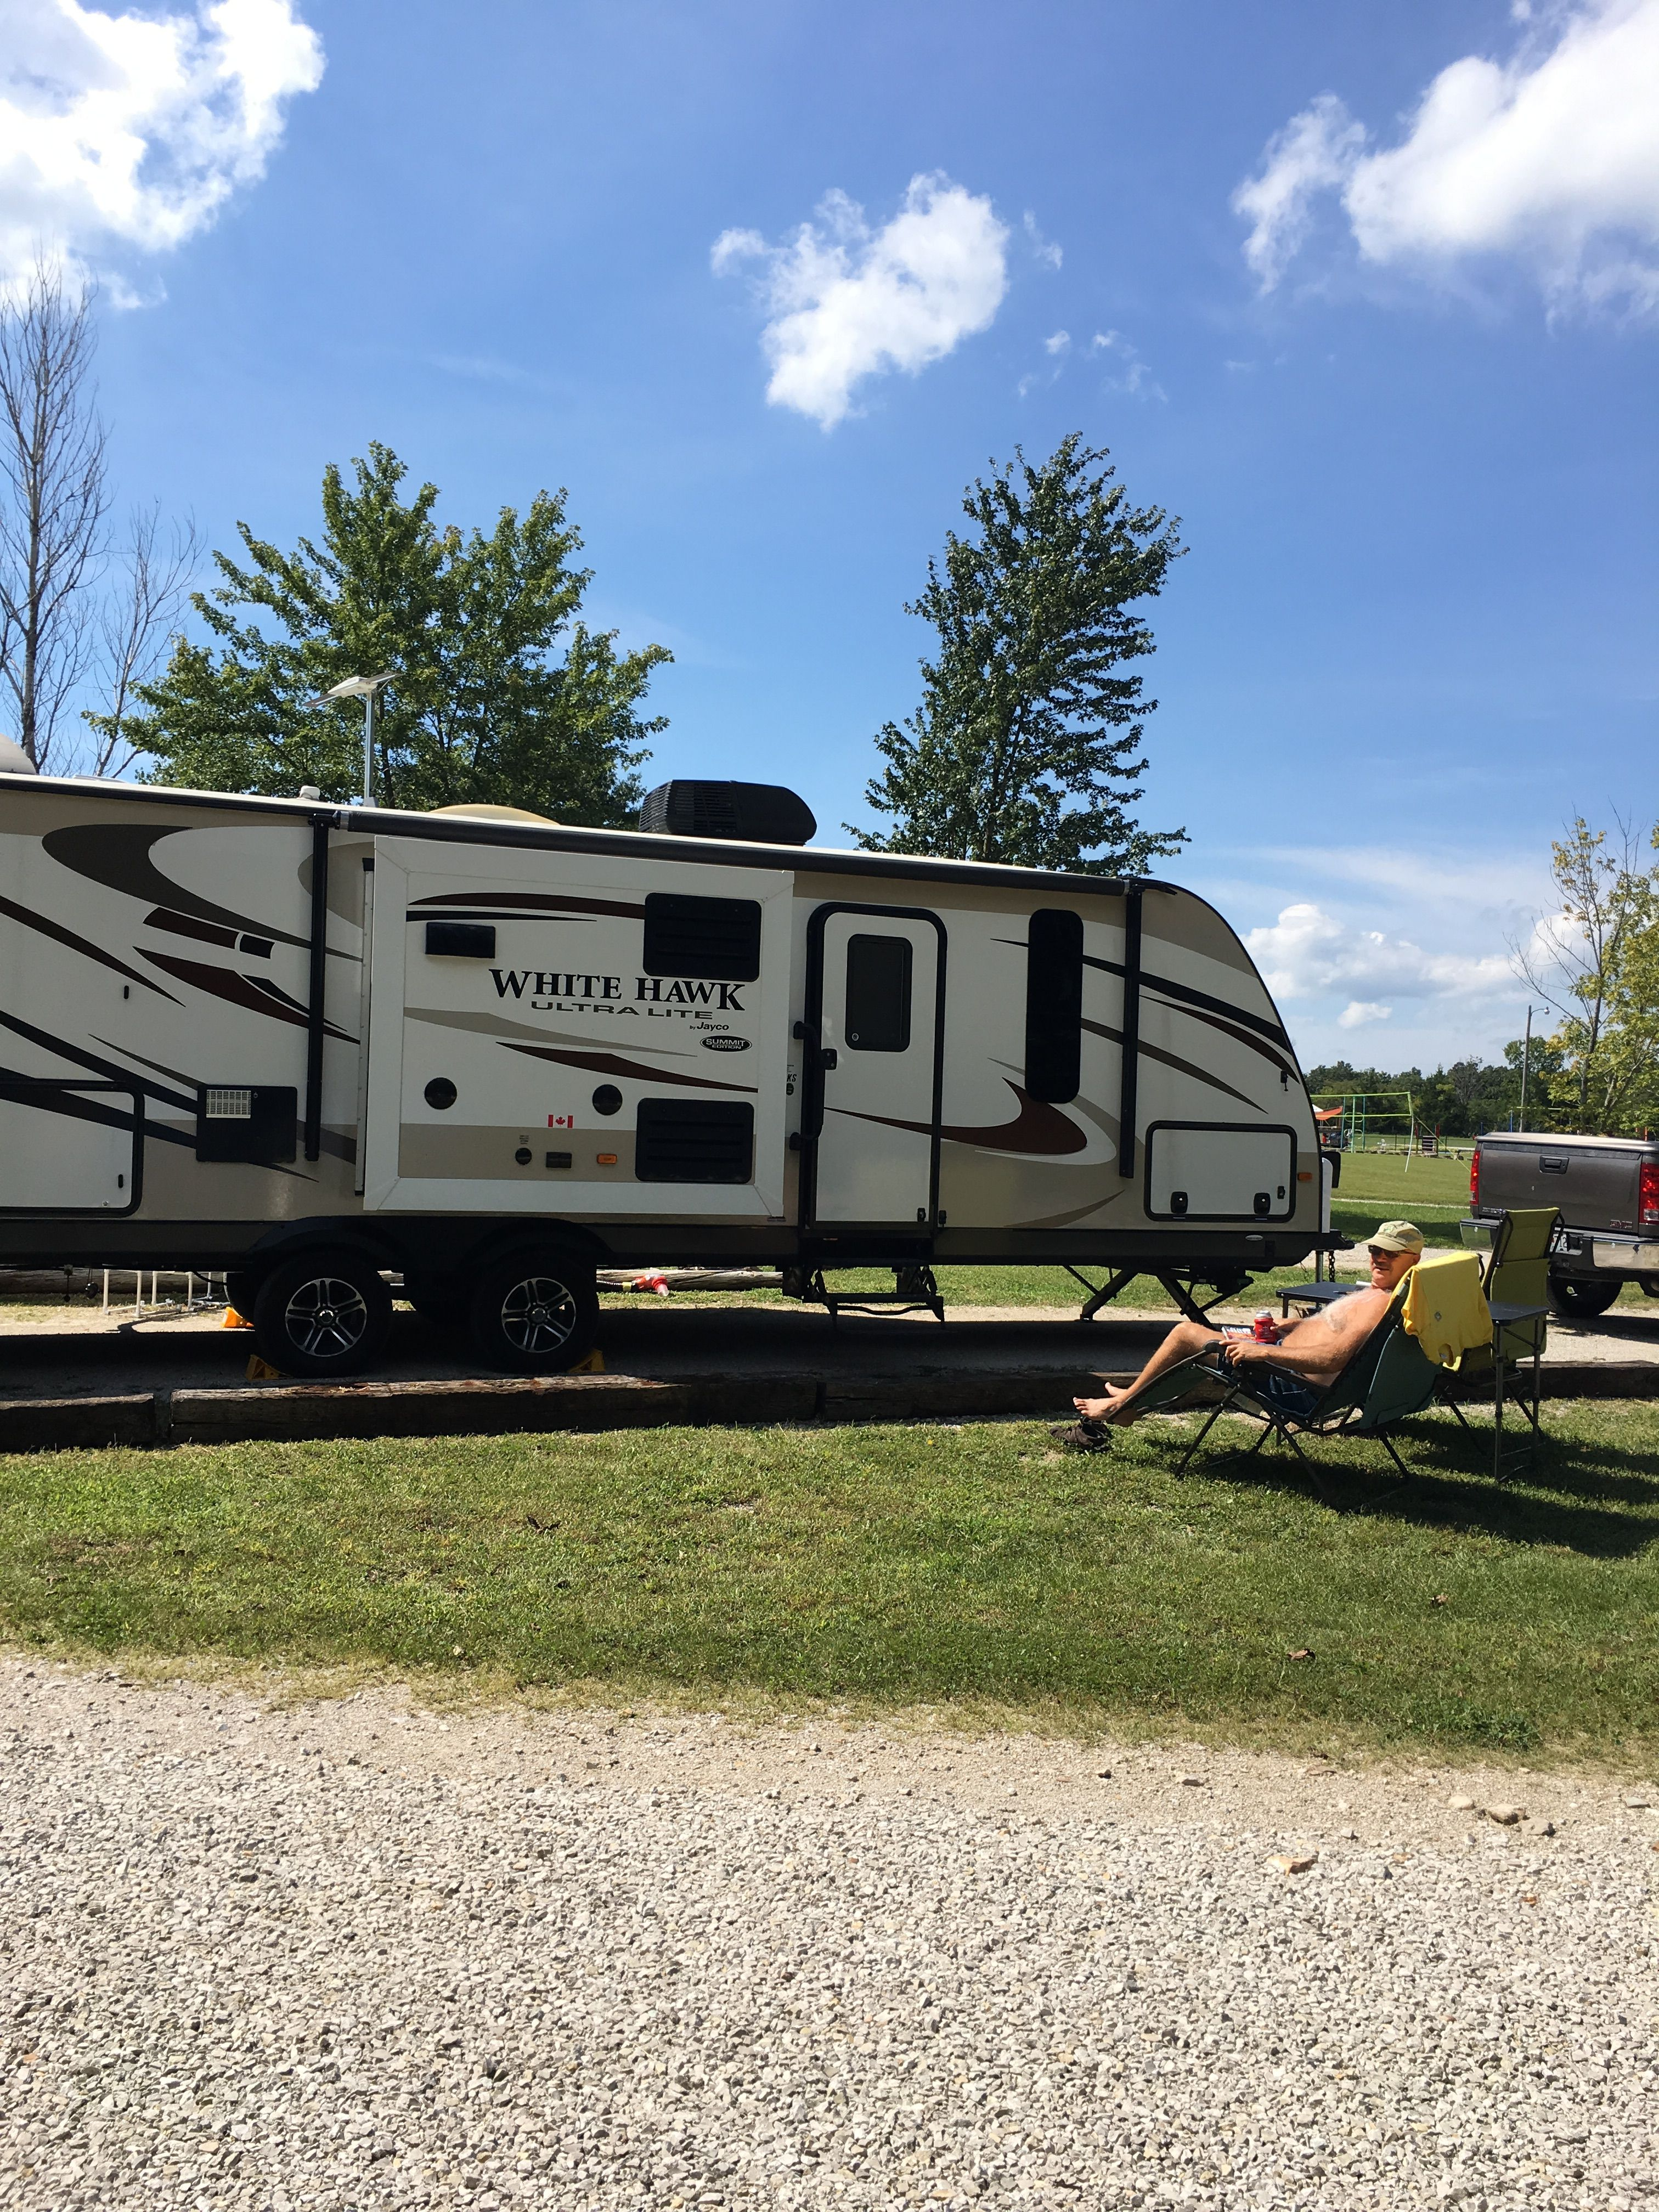 5th trip - the Kando Campground in Montgomery, MO on Sept 3-4, 2016